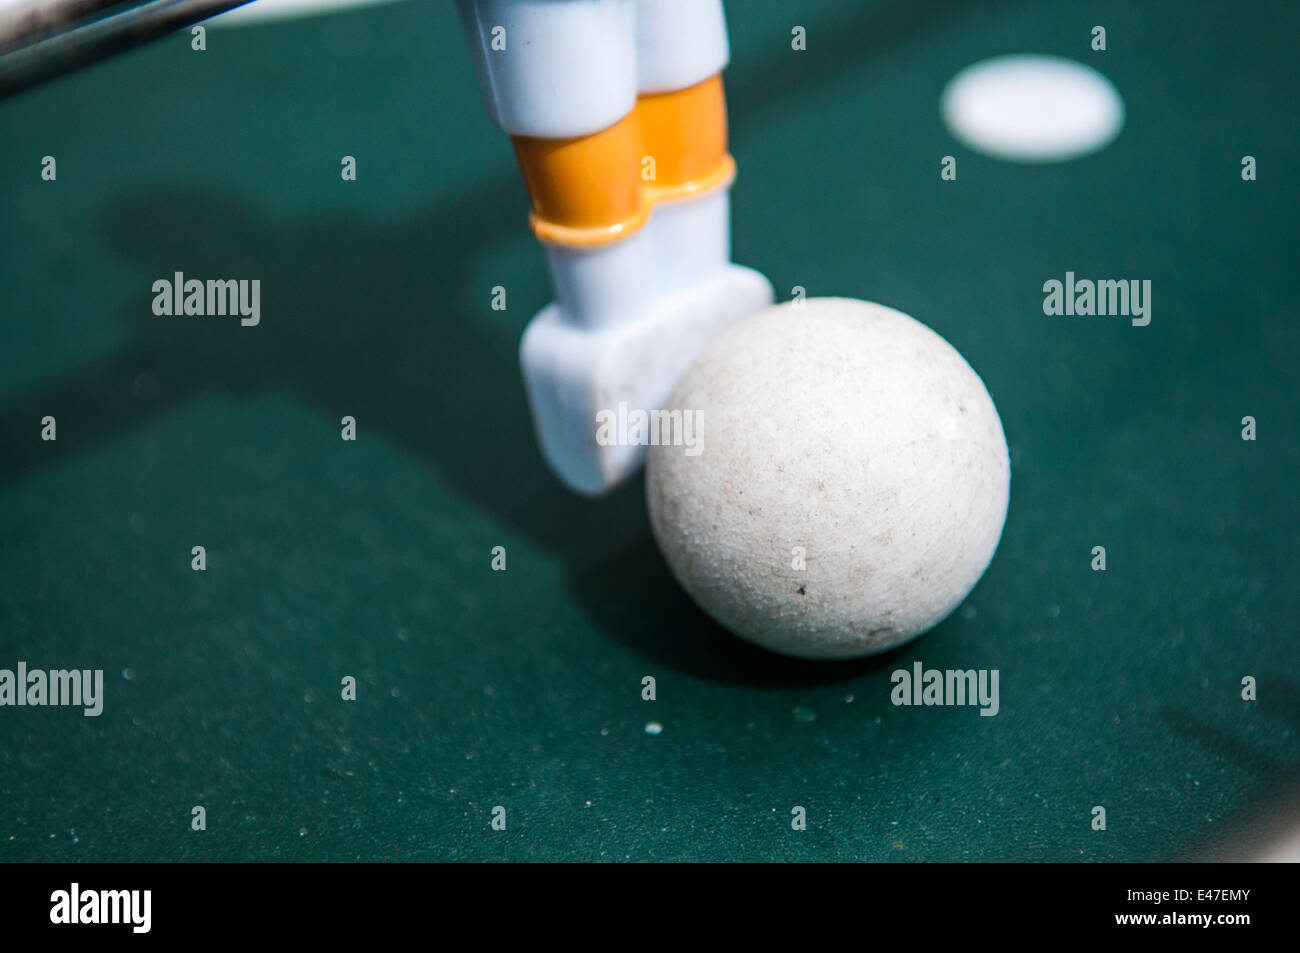 Table Football ball - Stock Image